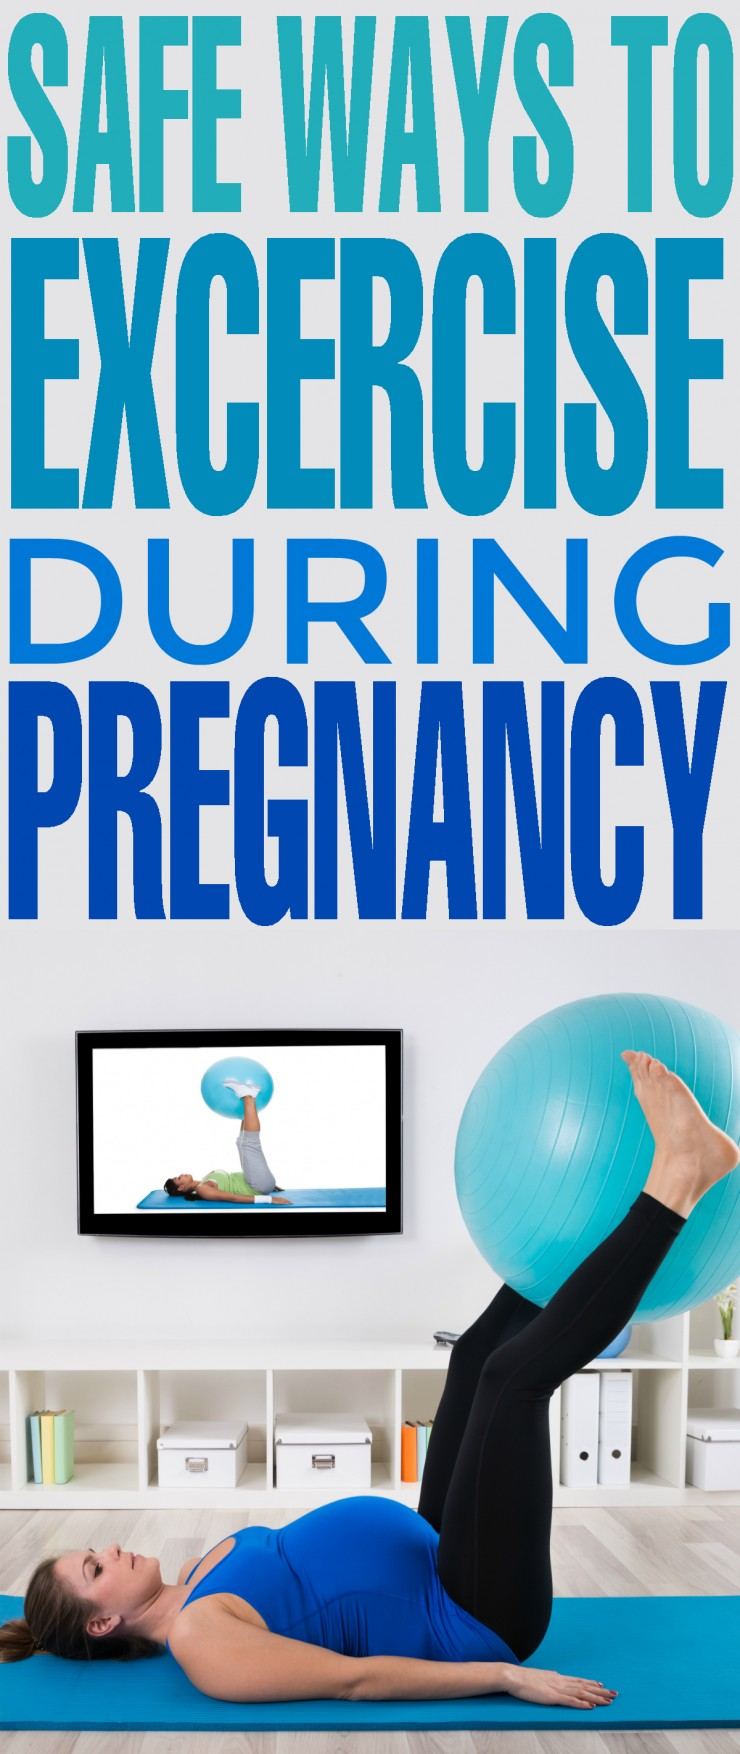 If you want to stay healthy and feel your best throughout your pregnancy, you have to maintain a regular exercise routine. Learn safe ways to excercise during pregnancy now!